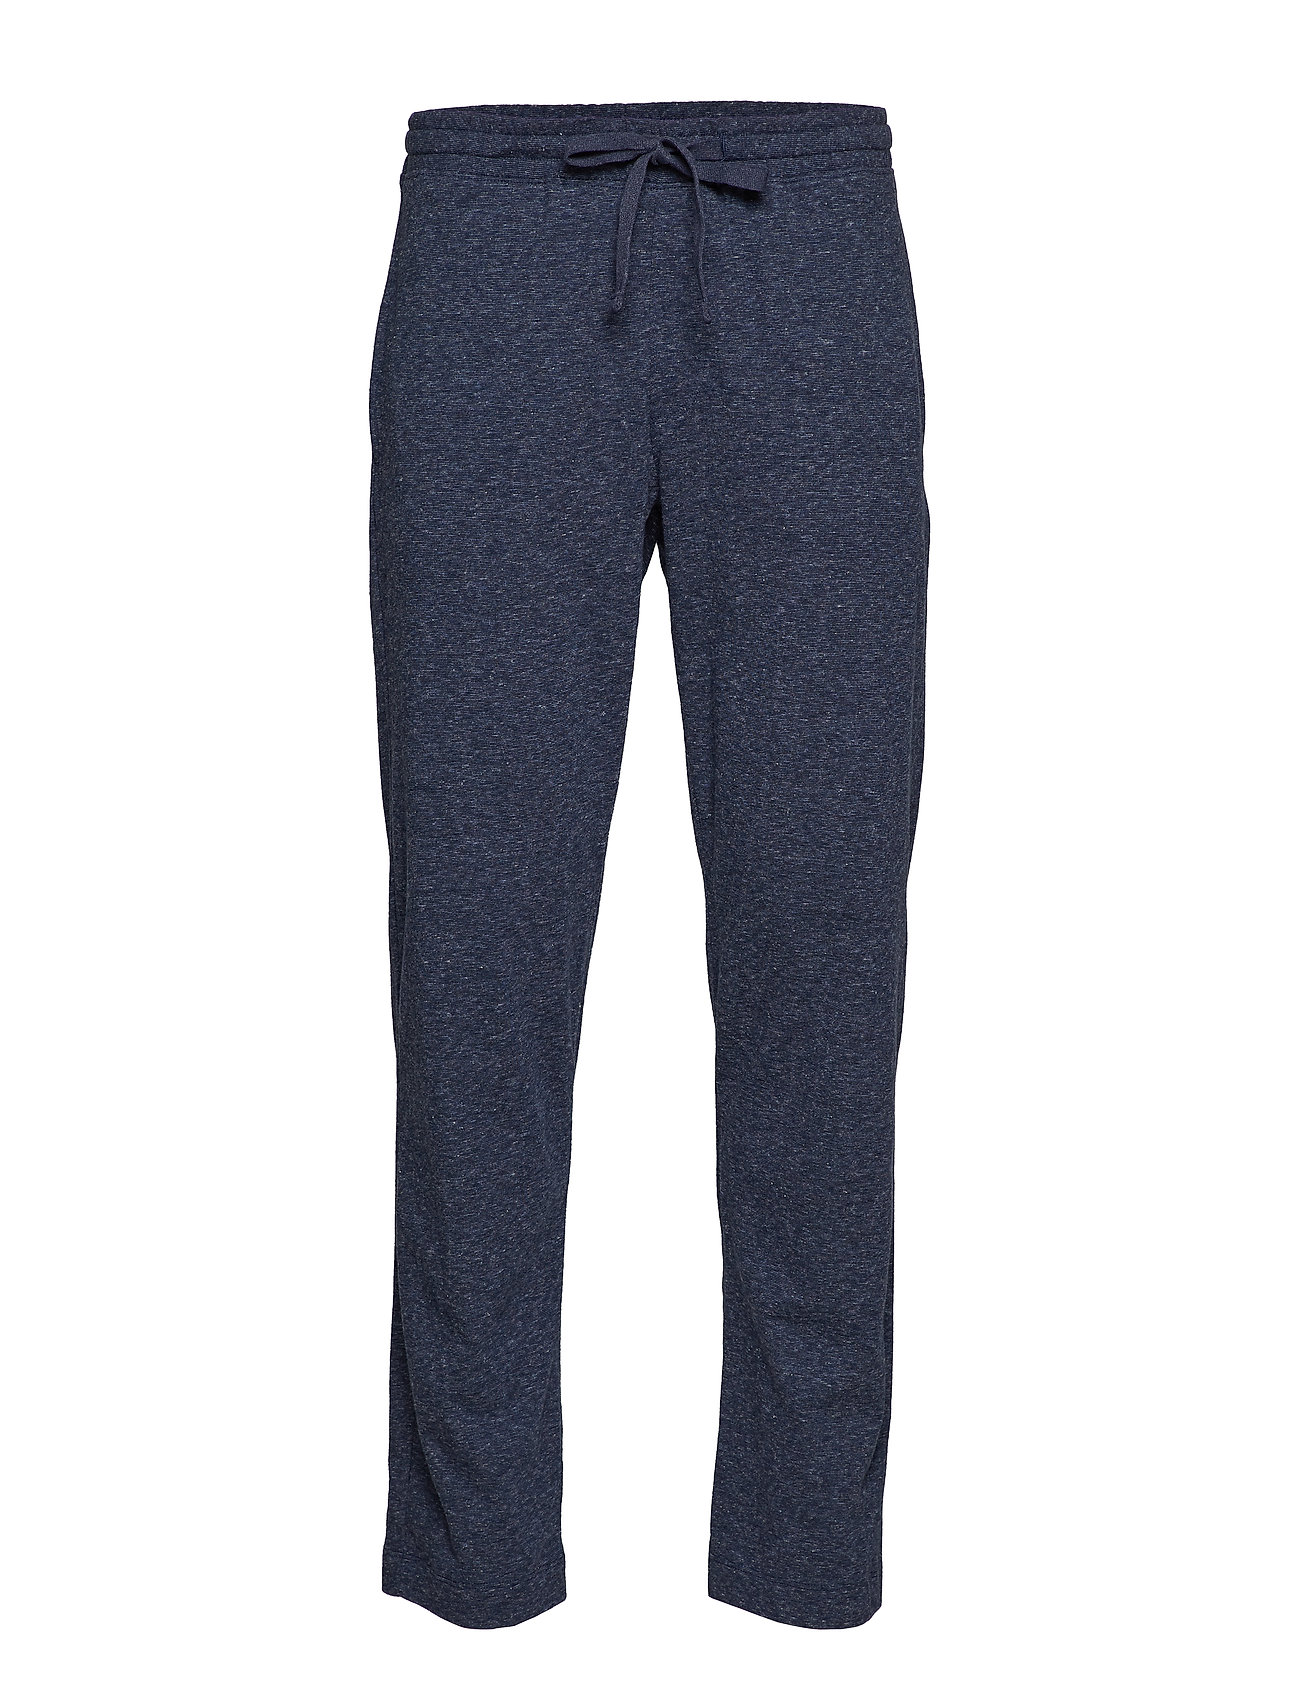 GAP Drawstring Lounge Pants - NAVY MARL